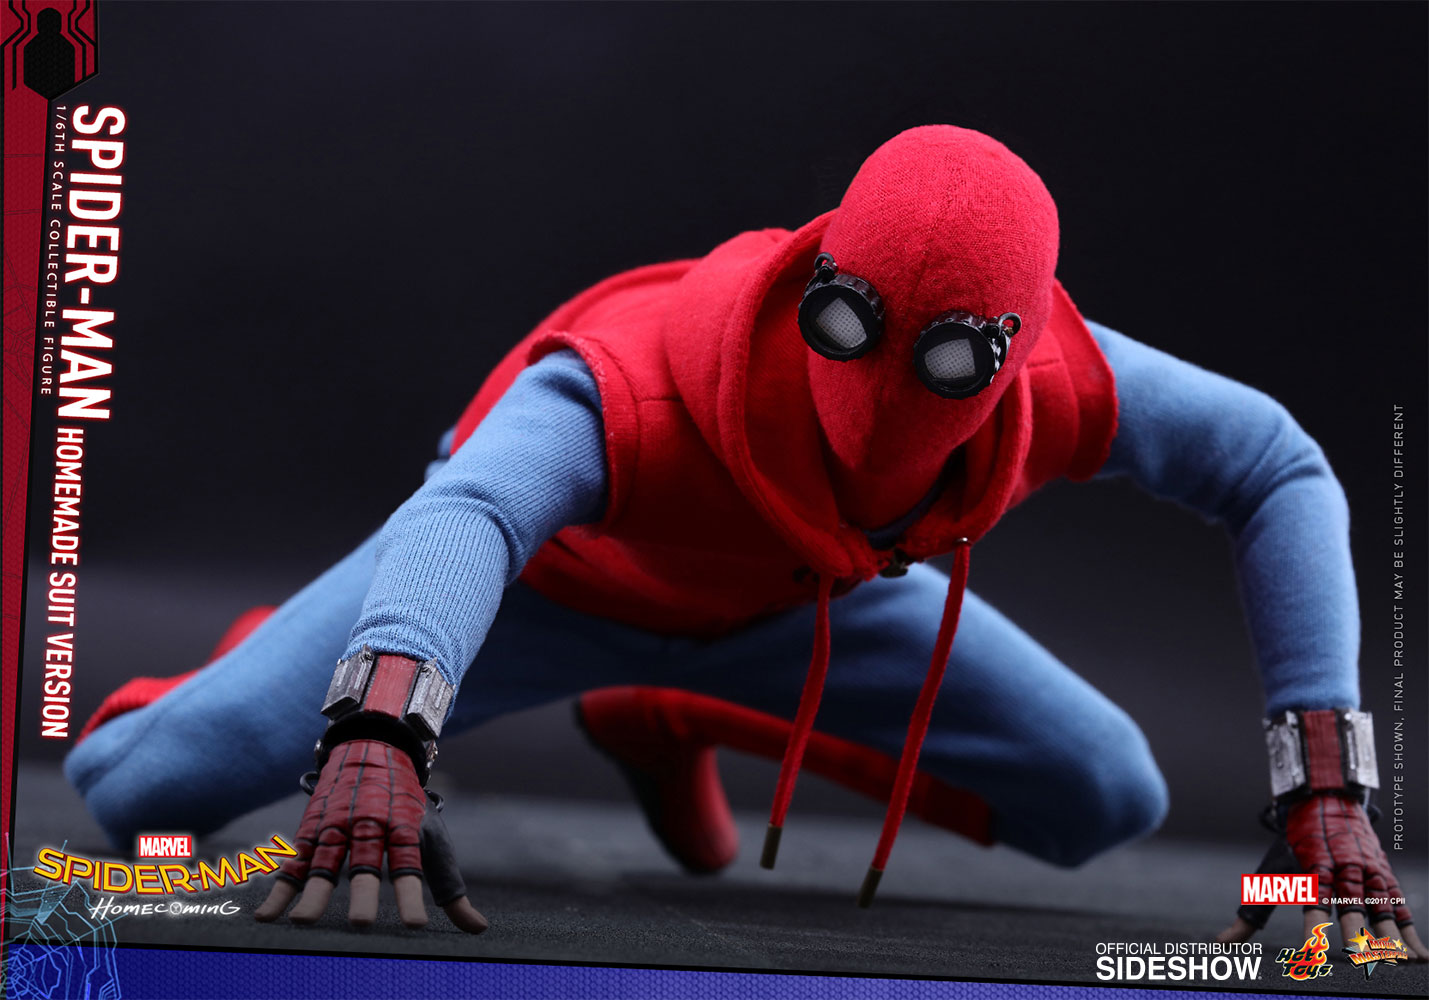 Marvel Spider-Man Homemade Suit Version Sixth Scale Figure b